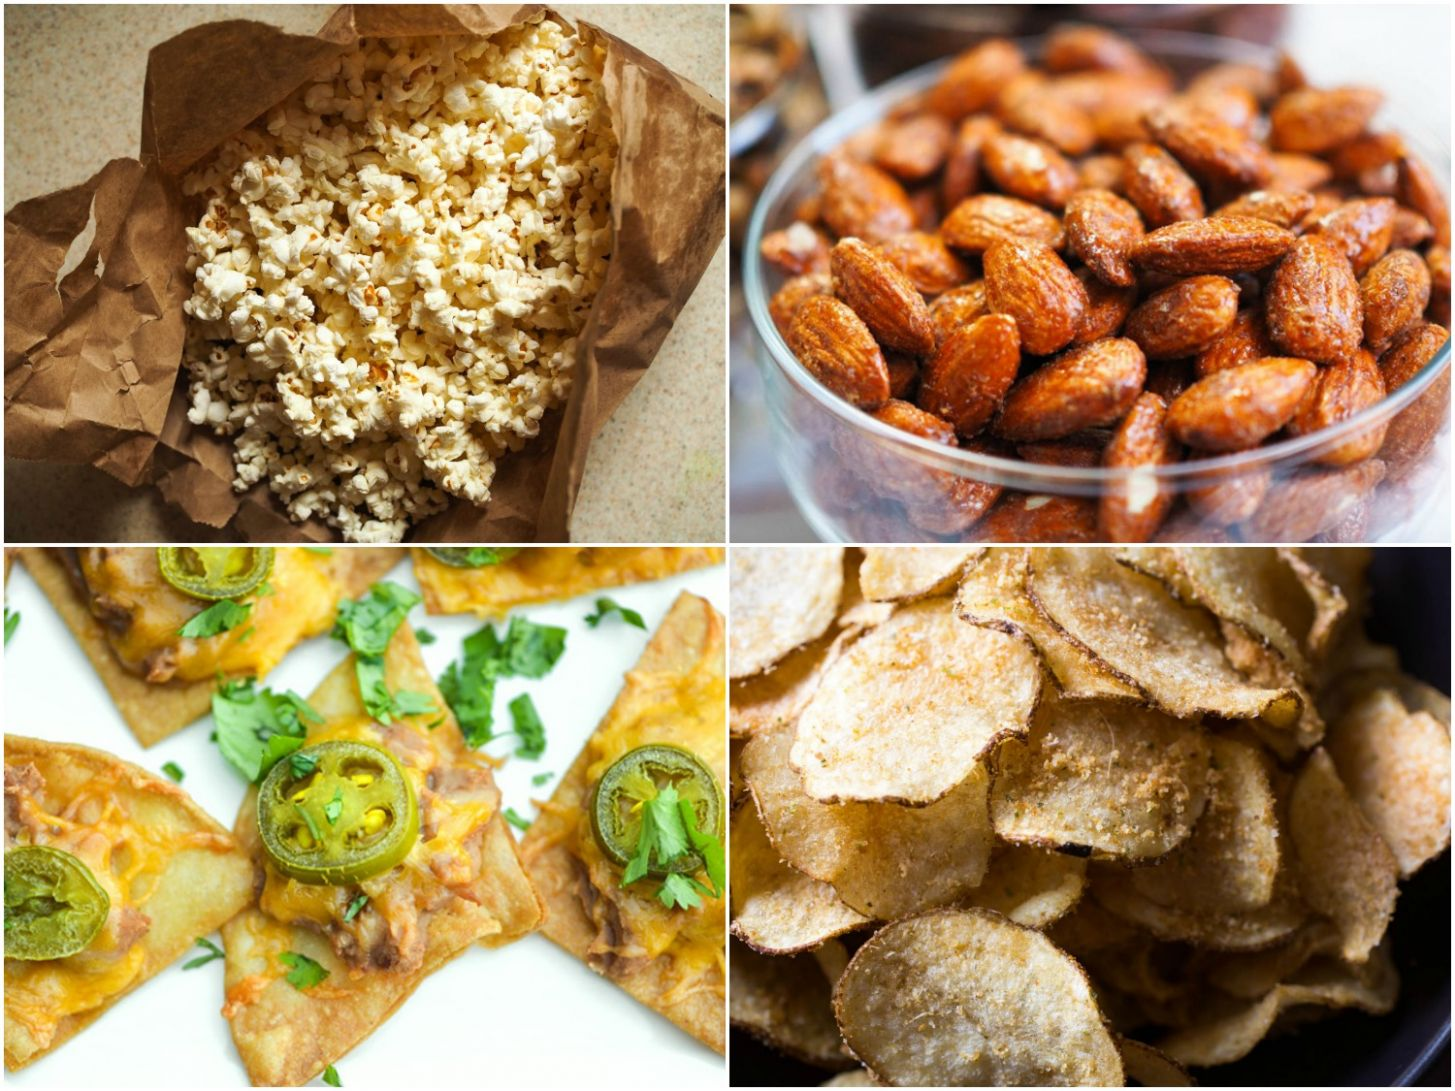 8 Addictive Snack Recipes for Movie Night at Home | Serious Eats - Food Recipes Snacks